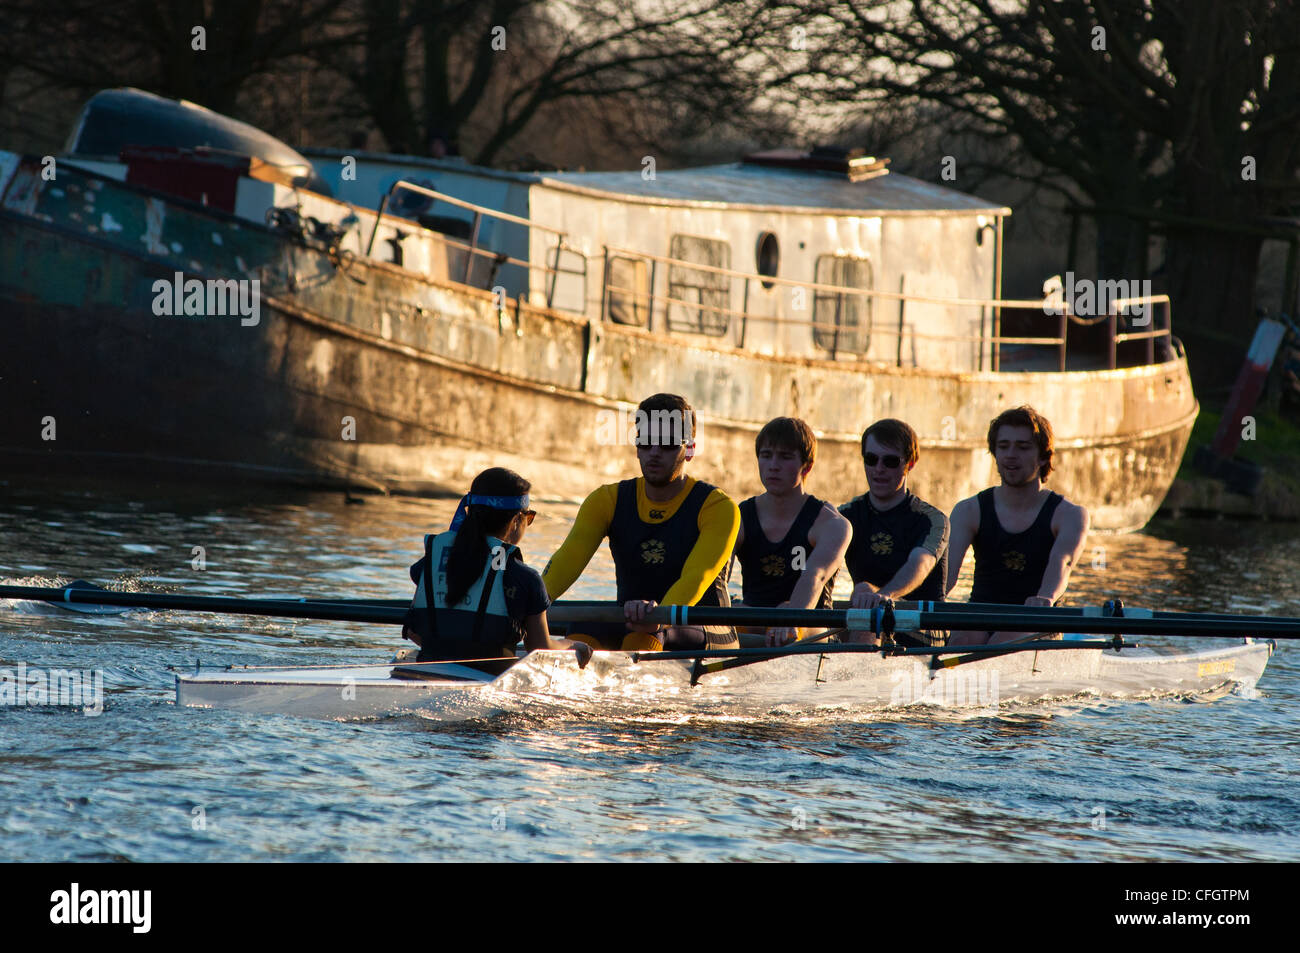 Rowers at sunset on river Cam near Cambridge, England. - Stock Image